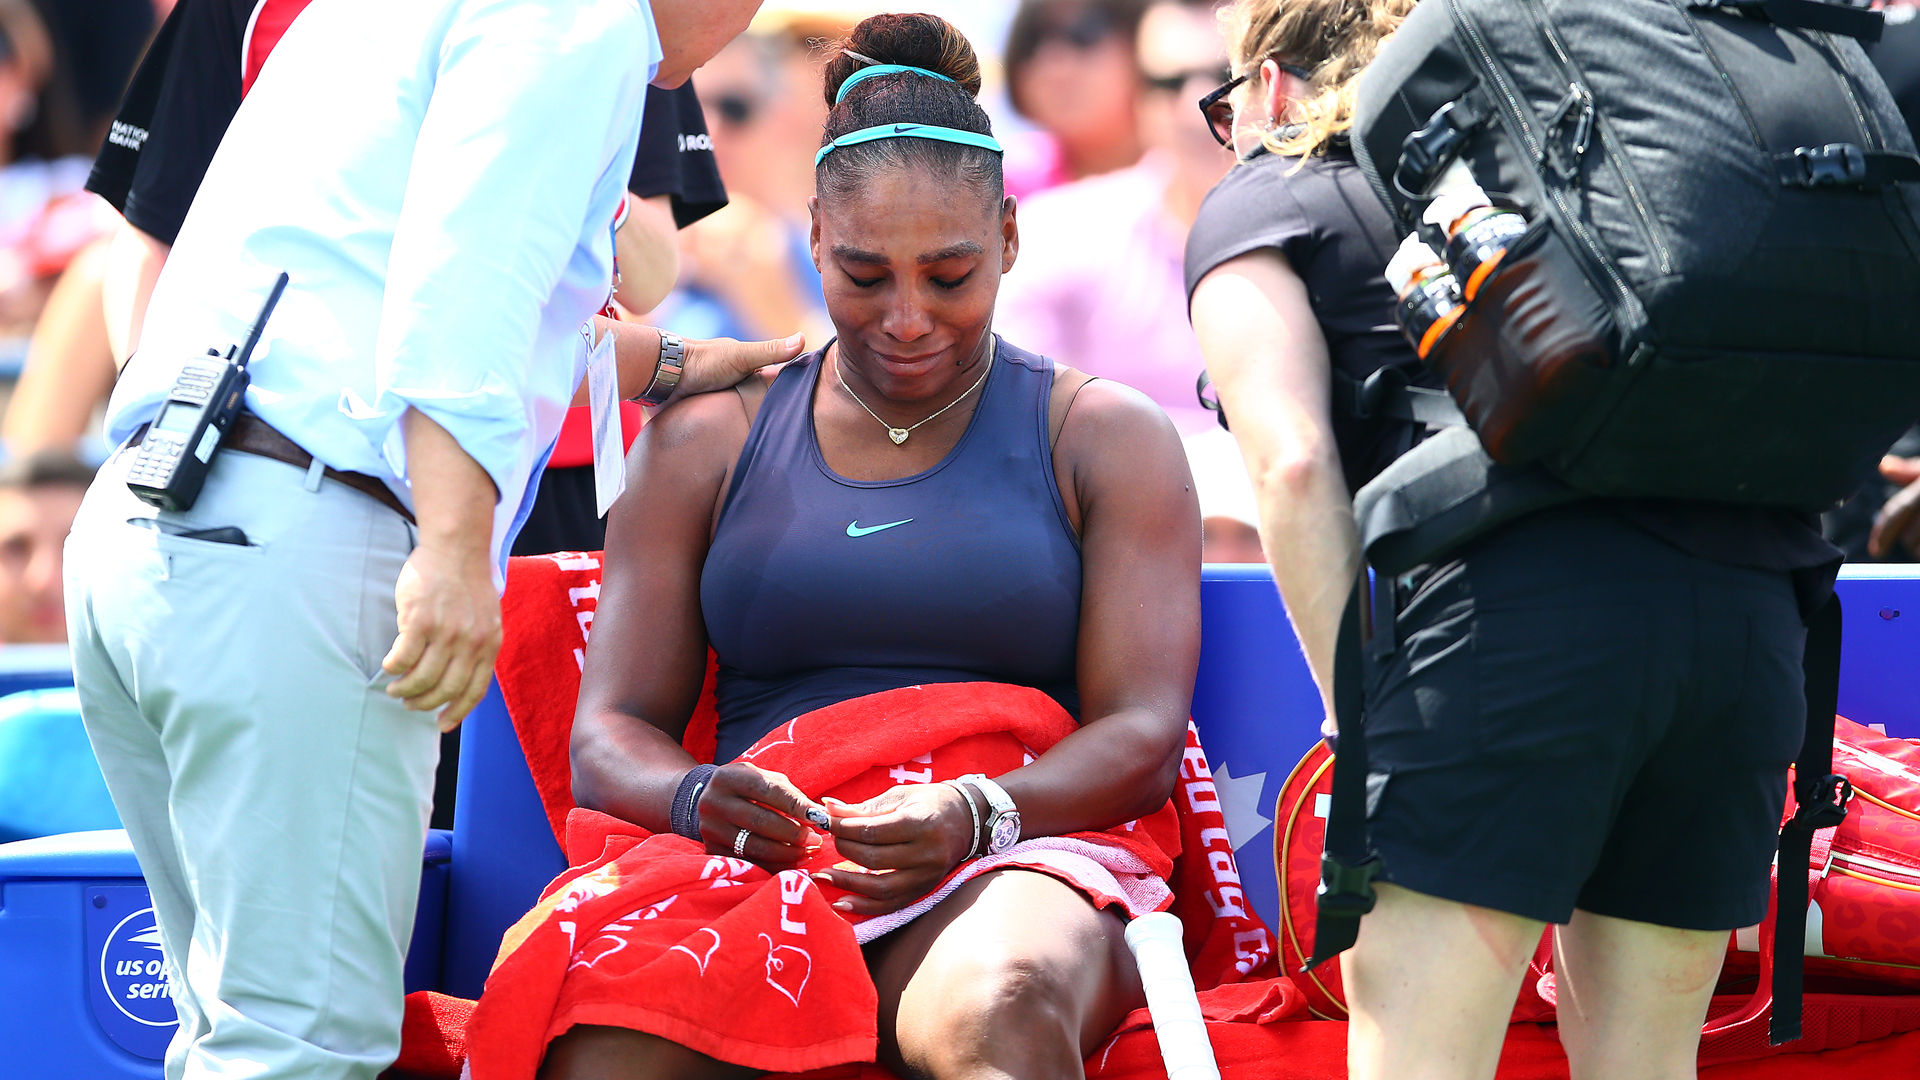 Serena Williams hopeful over back injury after Rogers Cup retirement